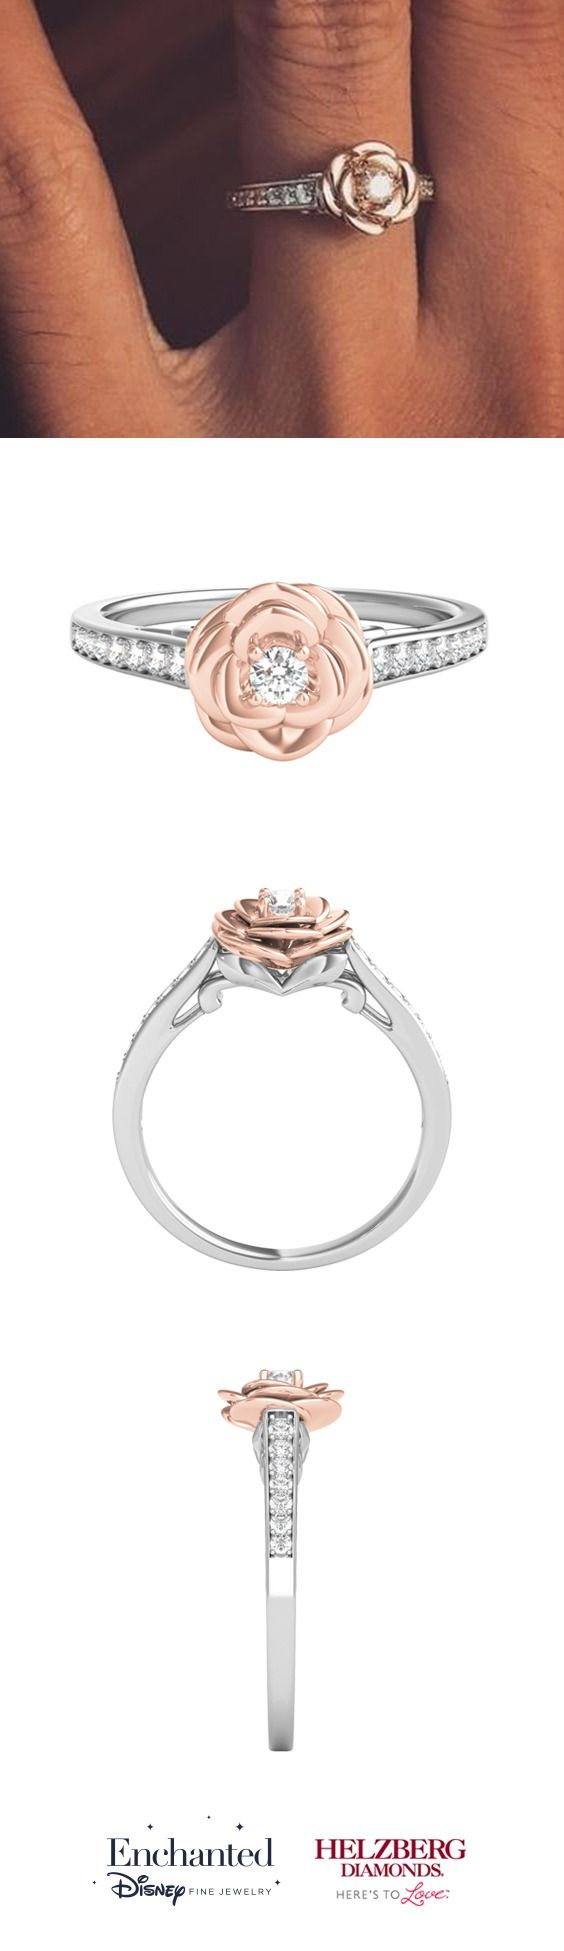 Best 25+ Beautiful promise rings ideas on Pinterest | Wedding ...